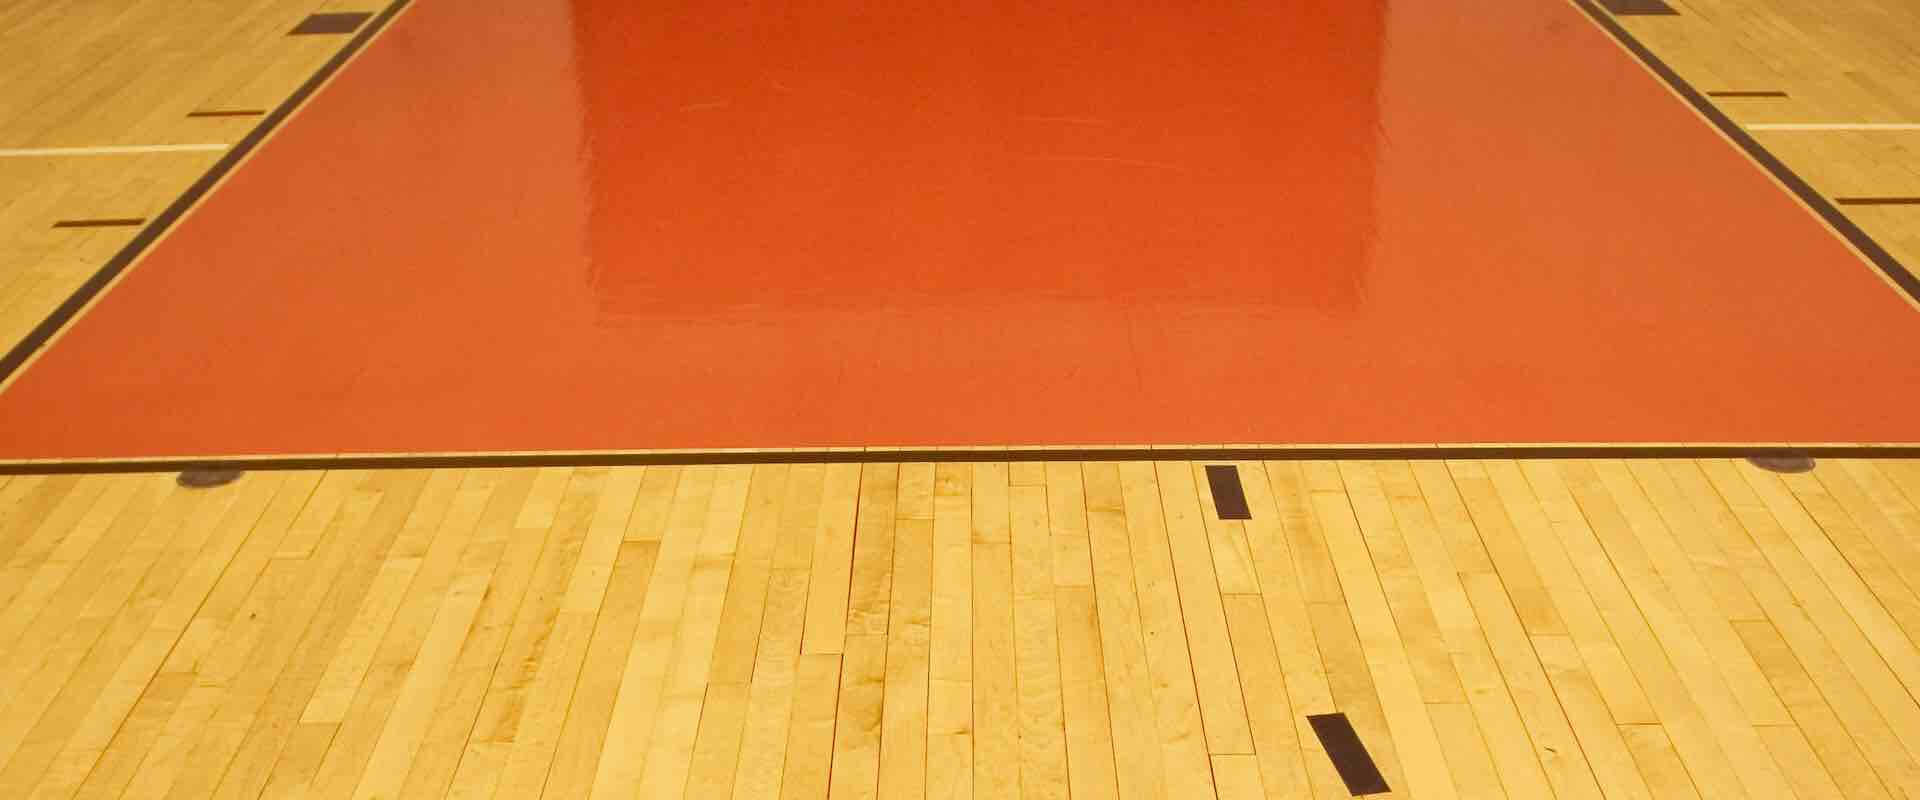 basketball_court-c